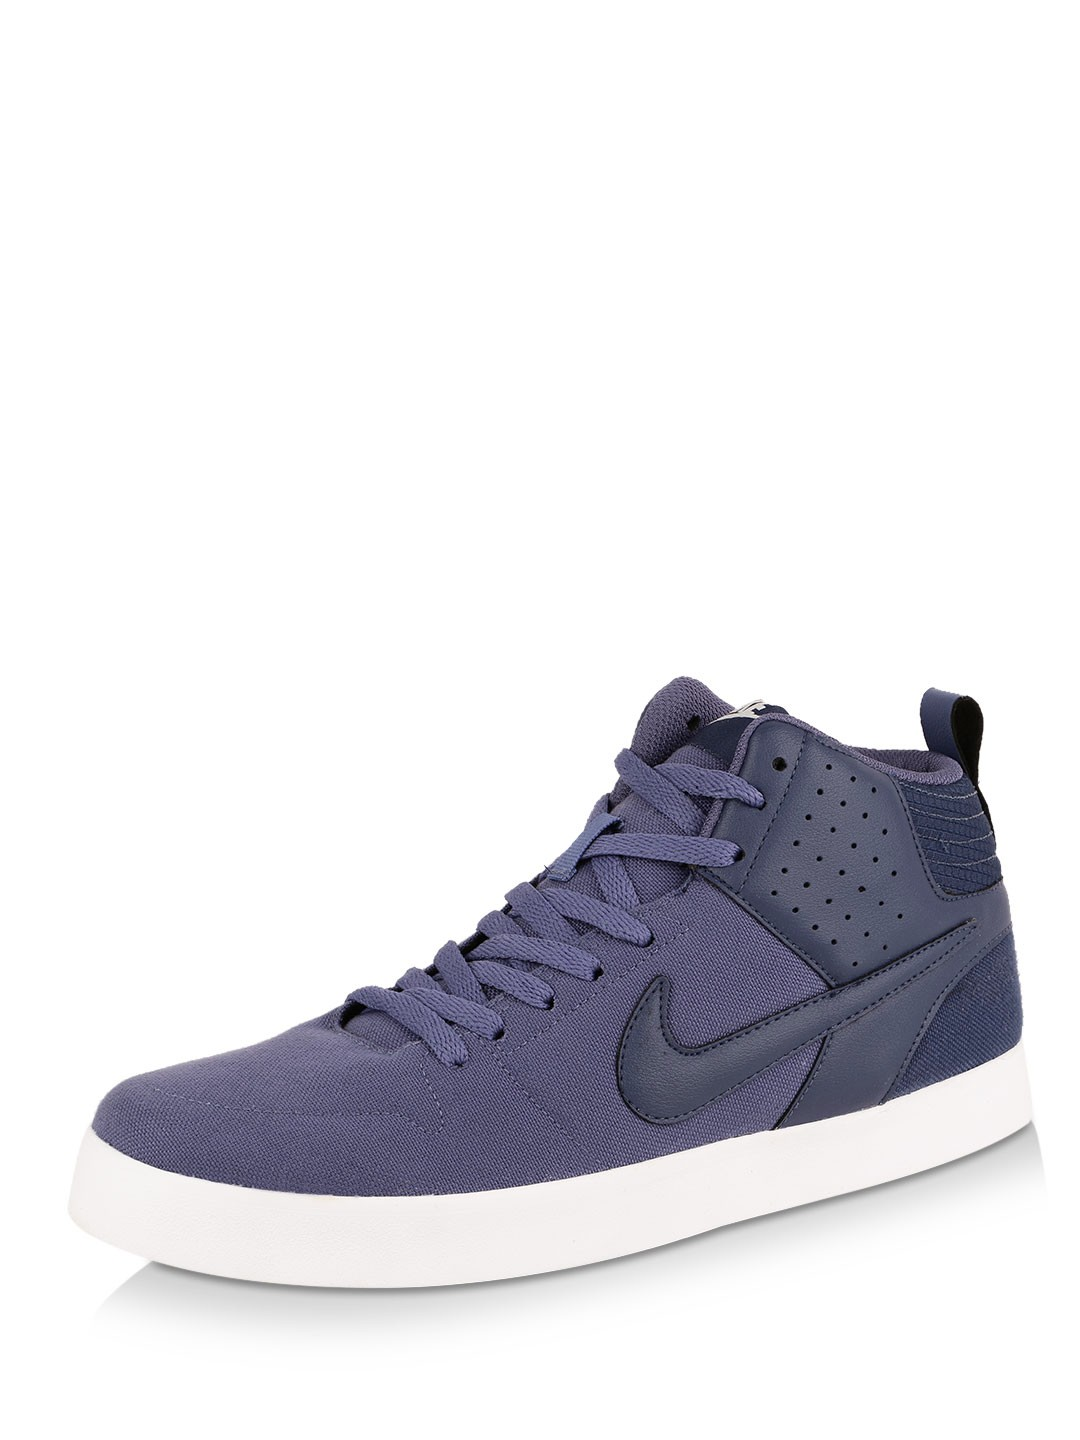 Nike PURPLE/BLUE/WHITE Liteforce Iii Mid Trainers 1